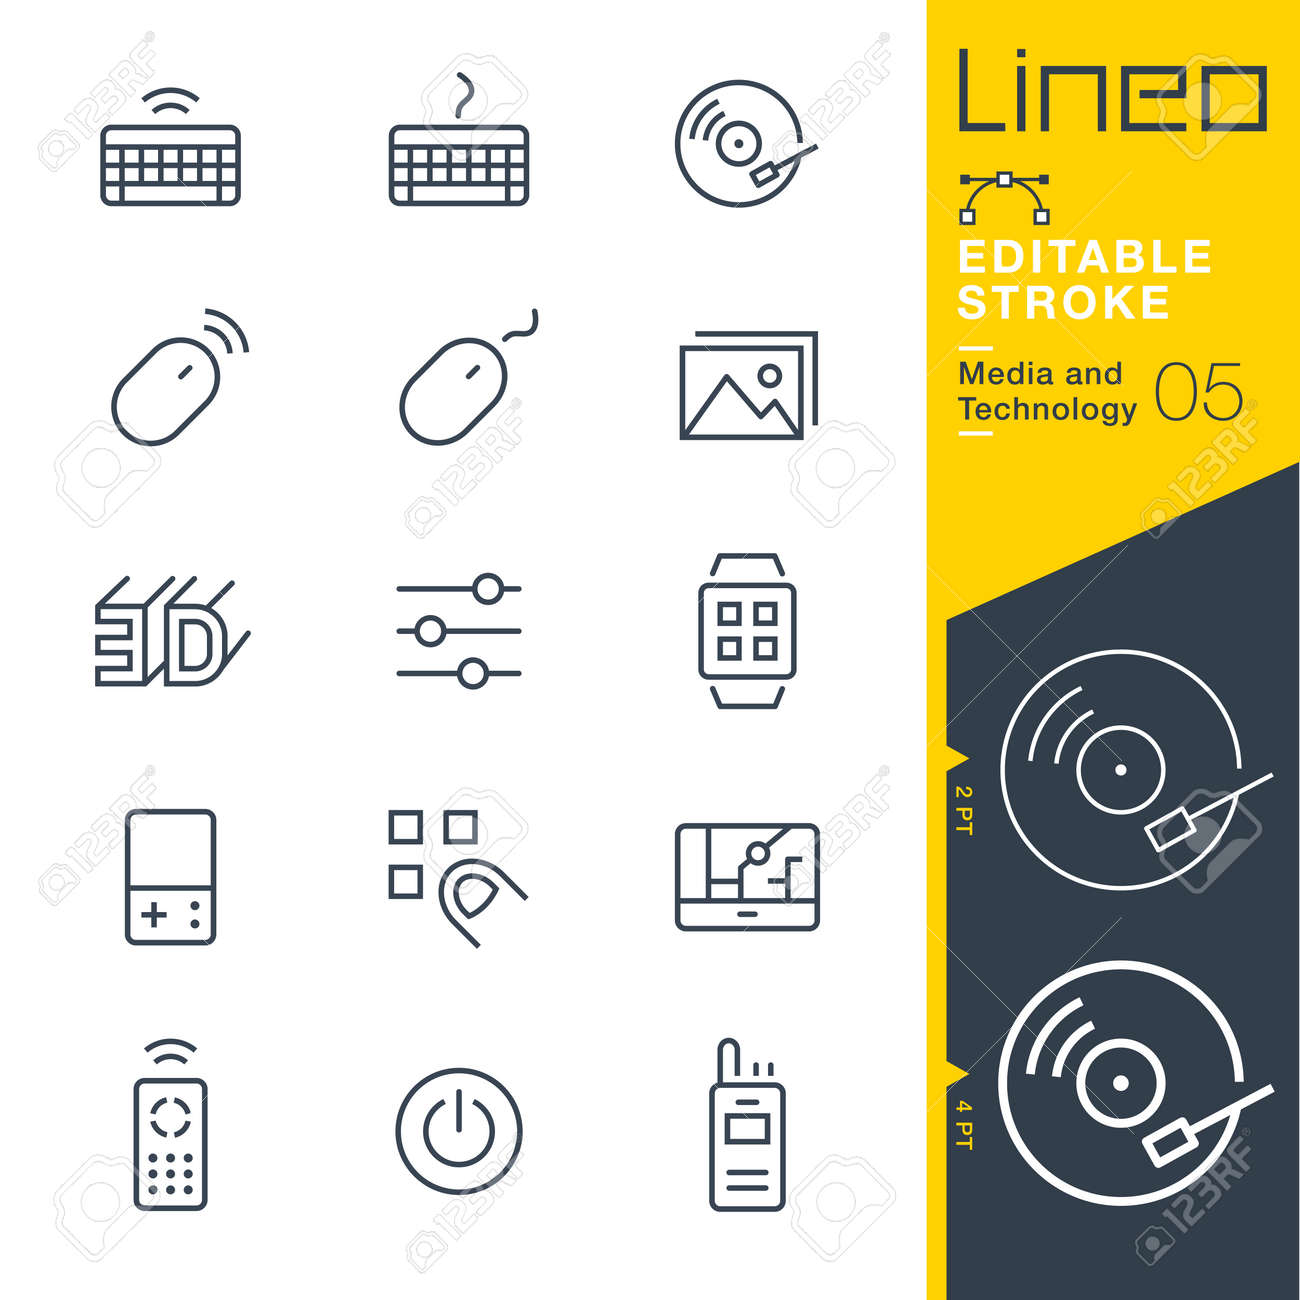 Lineo Editable Stroke - Media and Technology line icon Vector Icons - Adjust stroke weight - Change to any color - 84502436